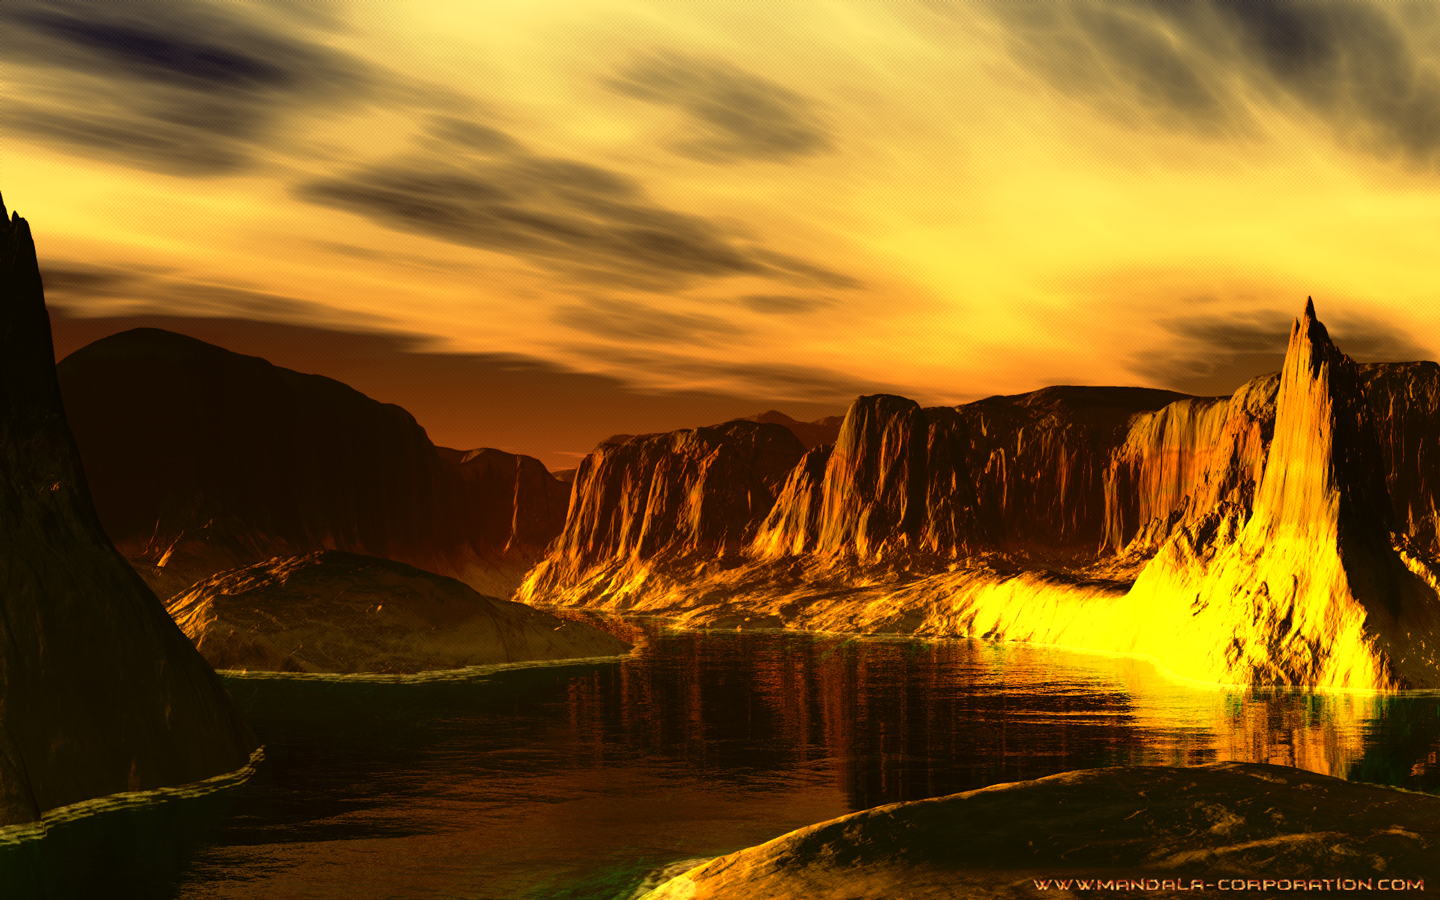 Alien Planet Landscapes Wallpaper - WallpaperSafari